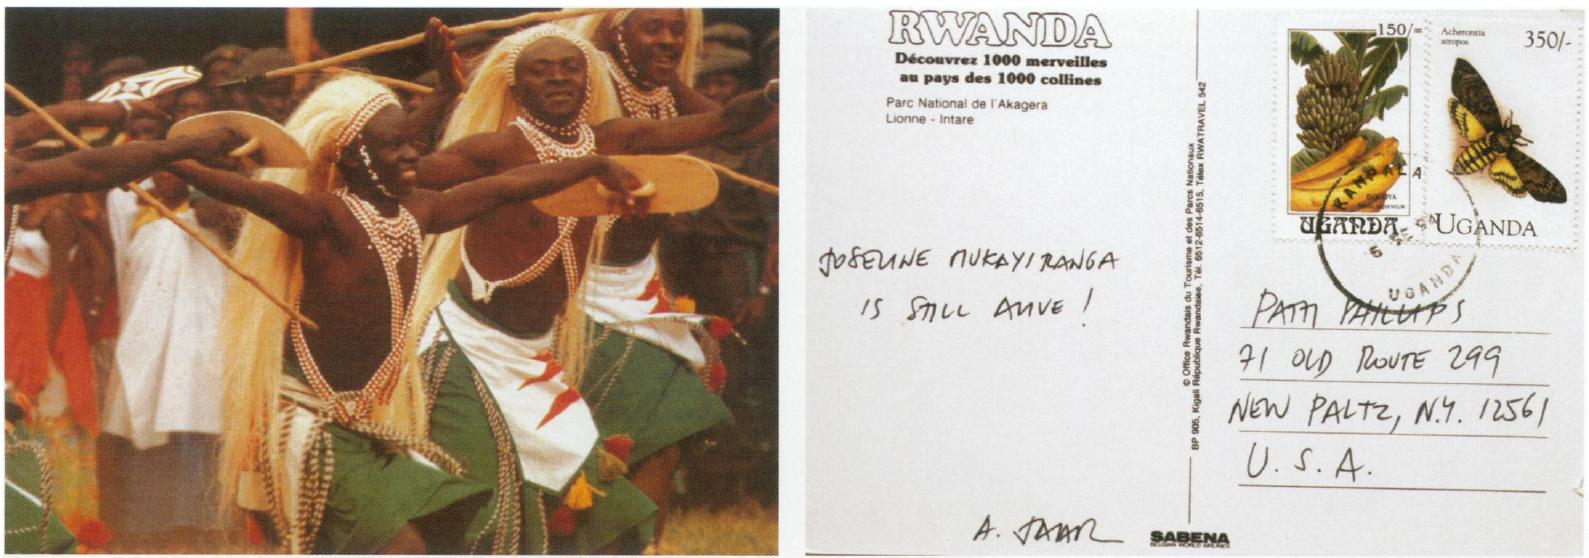 essay on genocide in rwanda Review essay may/june 2001 issue the unanswered question: attempting to explain the nativism, and genocide in rwanda by mahmood mamdani princeton.